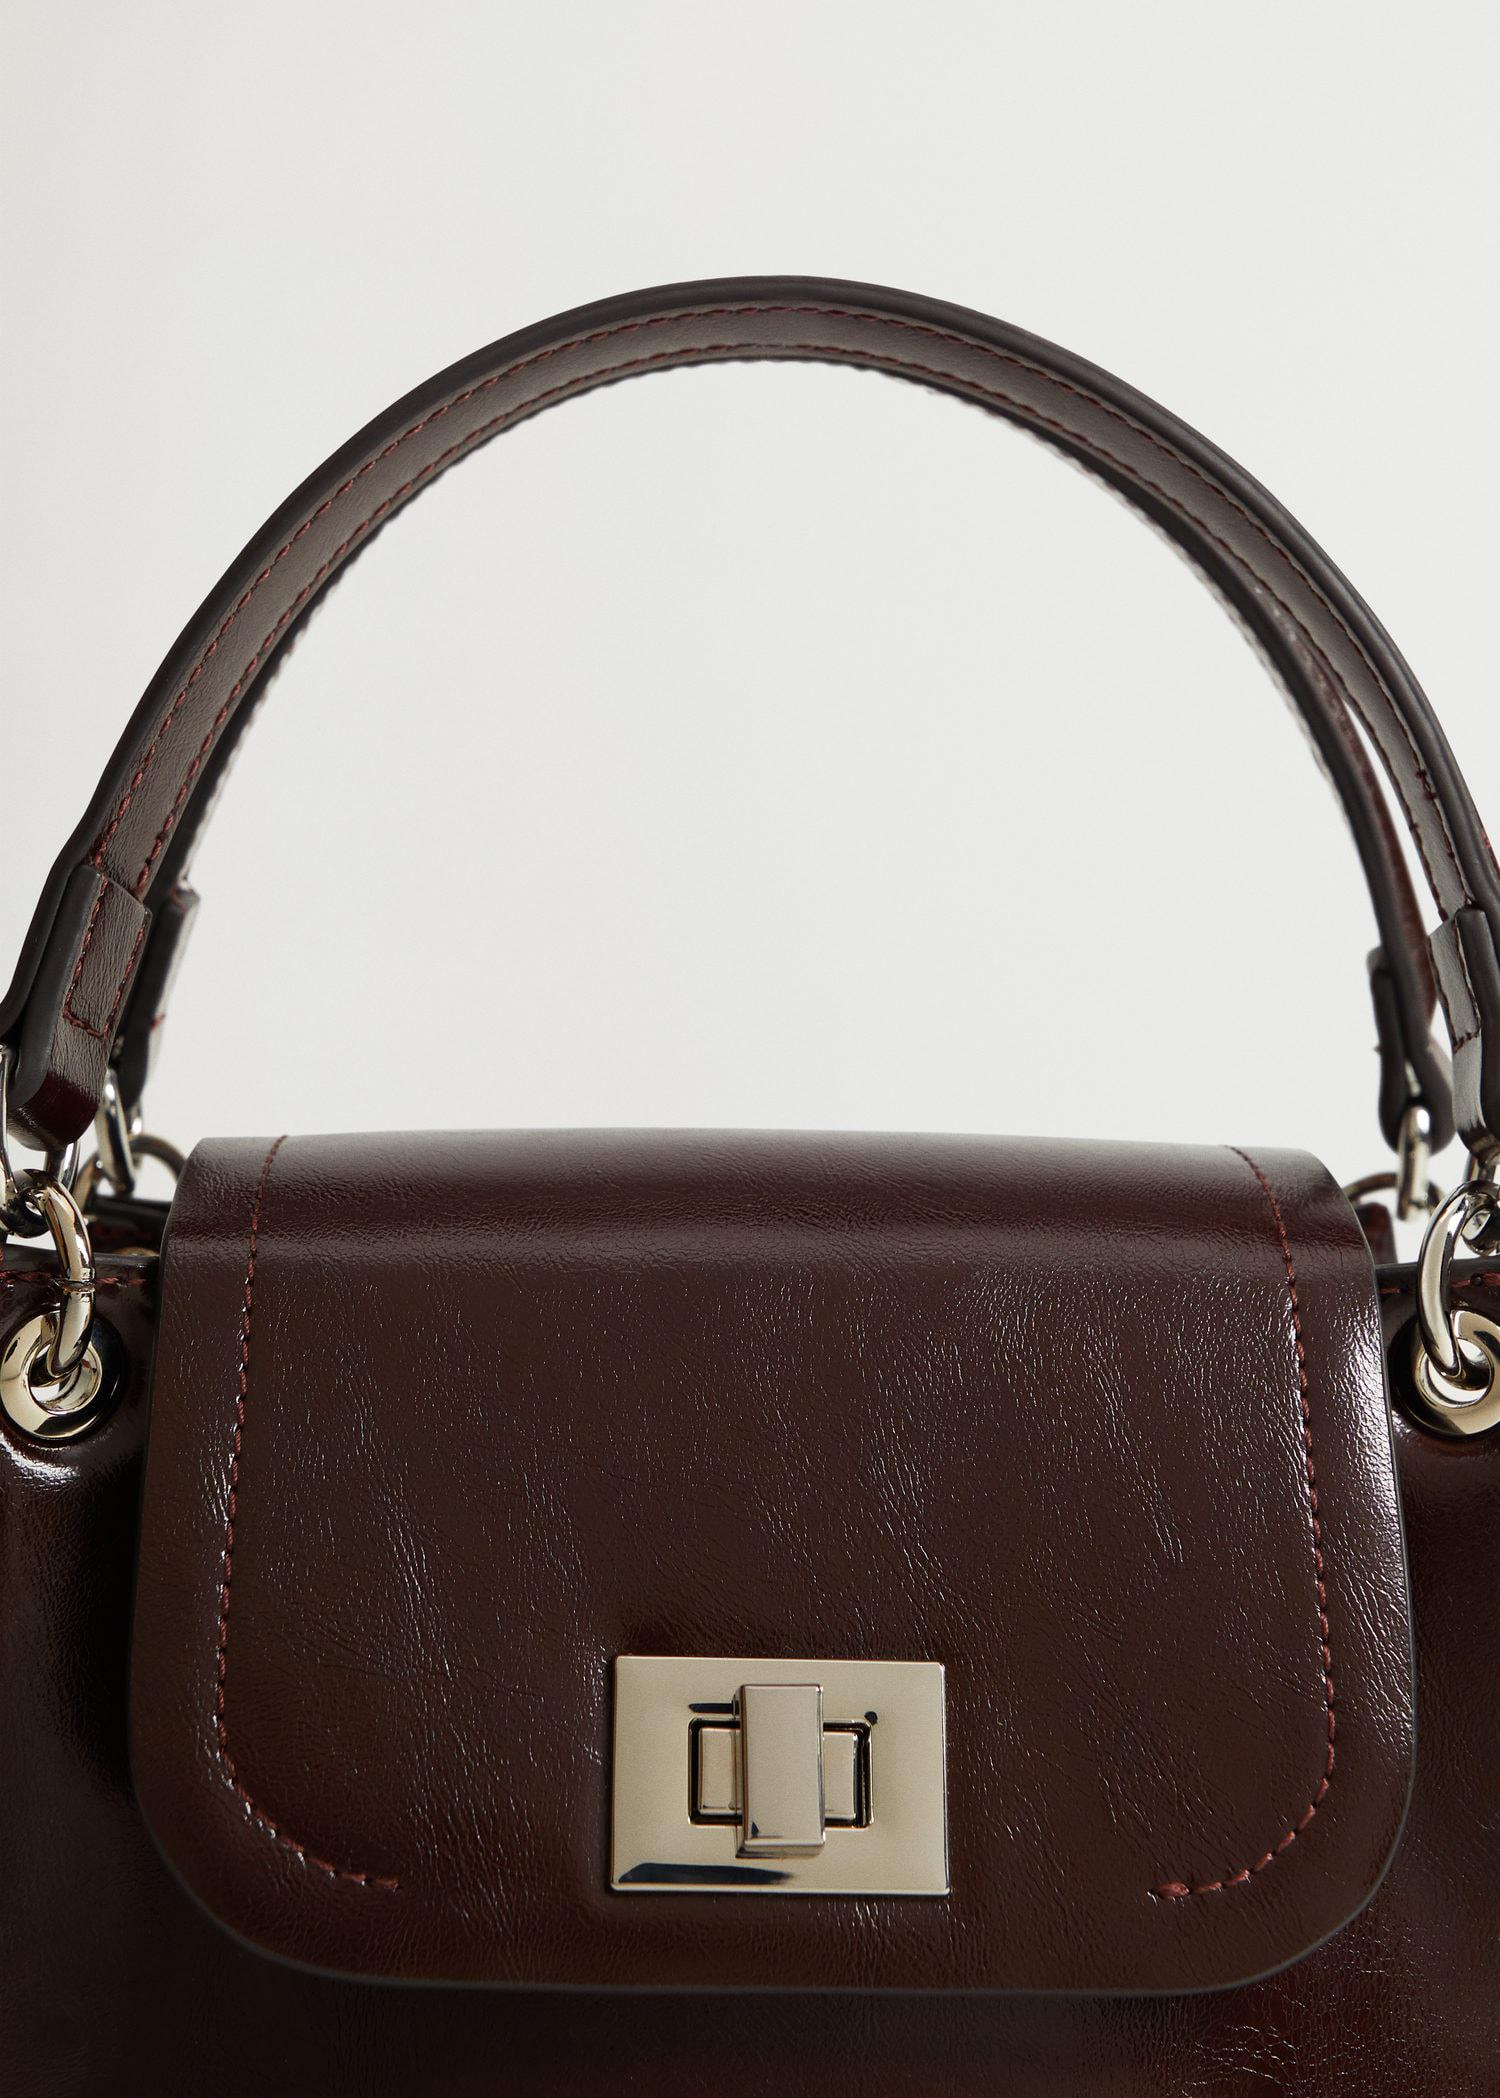 Double strap bag with flap 3